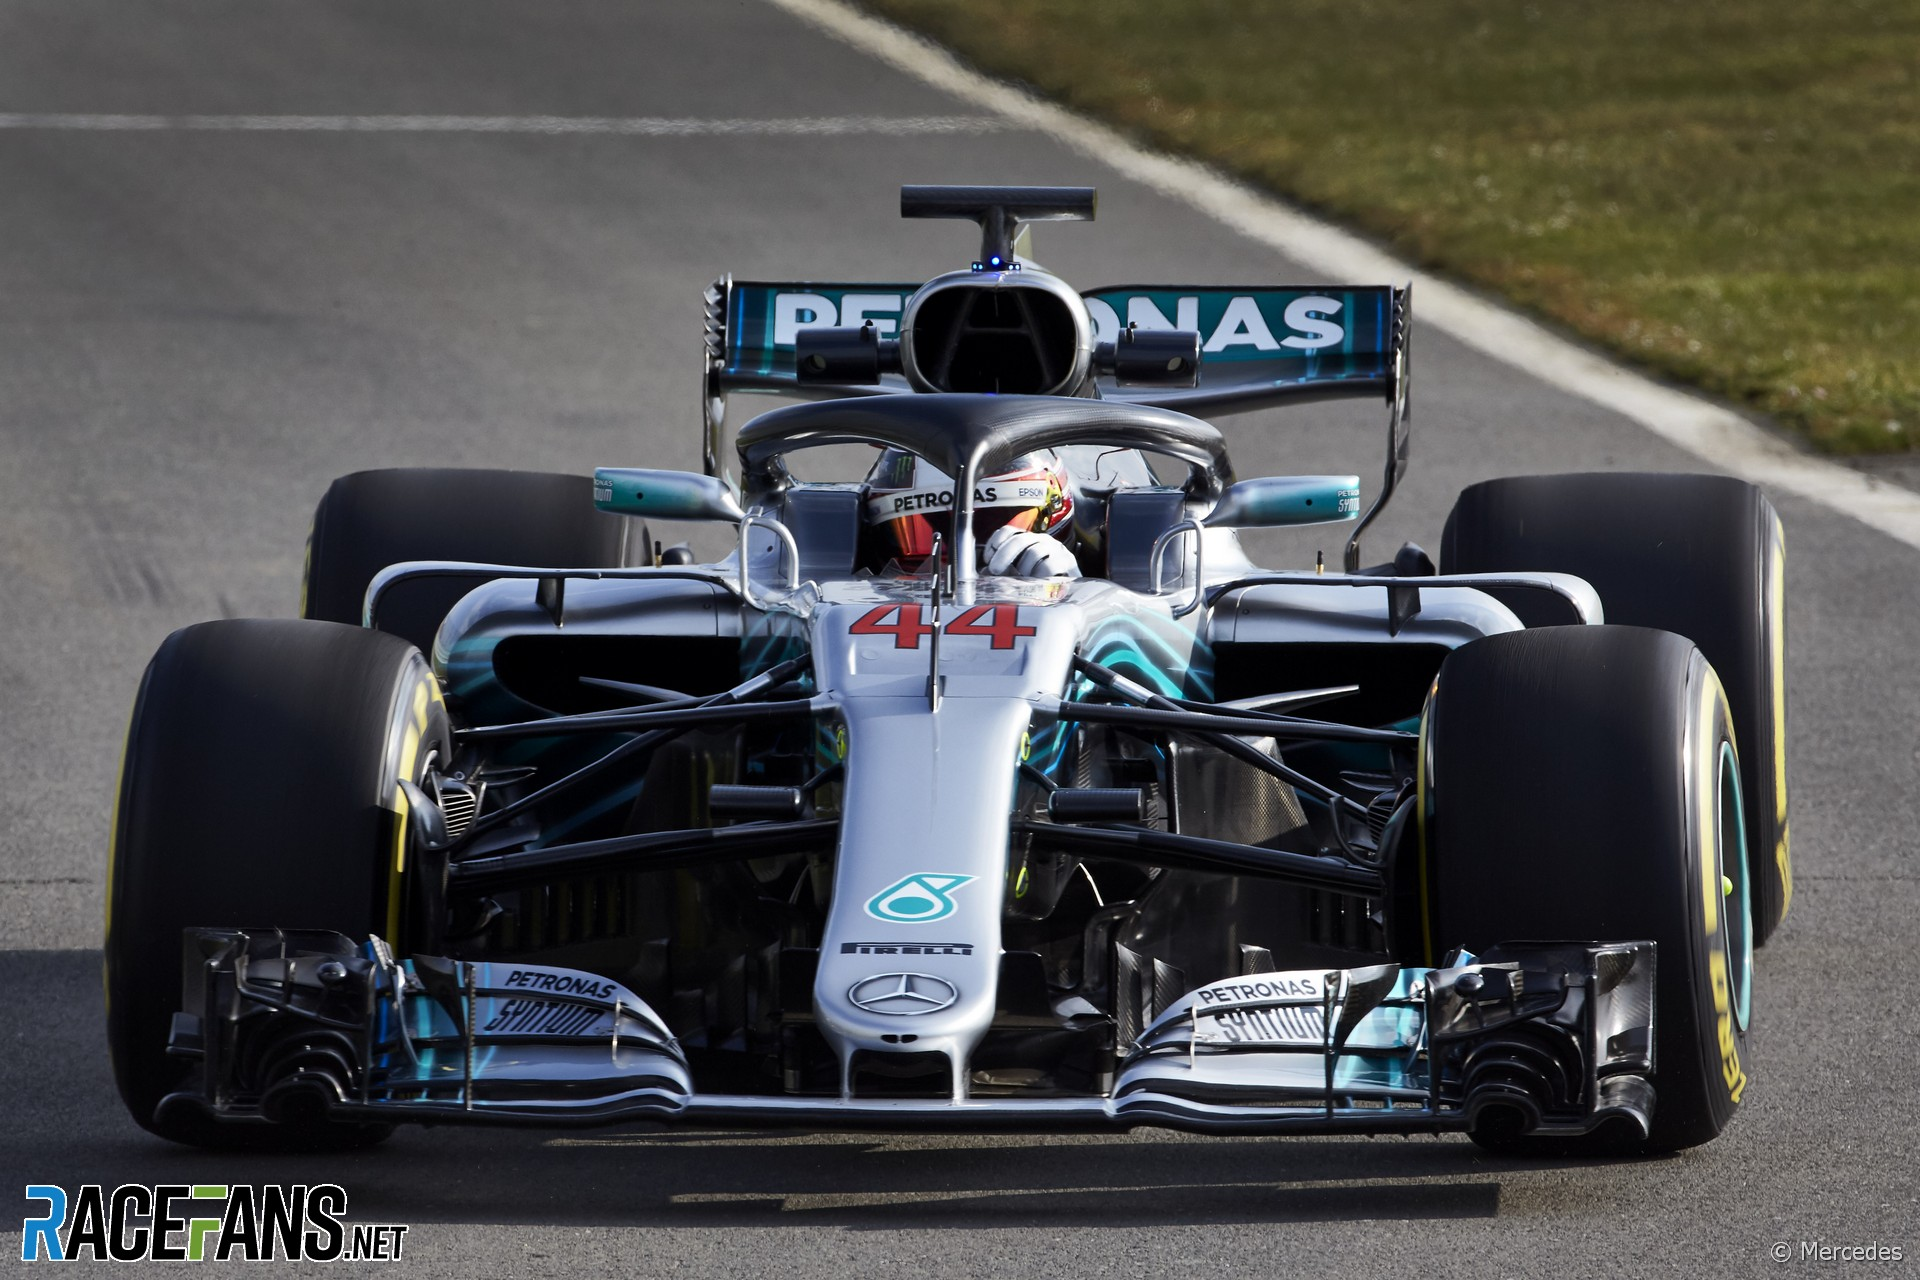 Mercedes uncover their new F1 car for 2018 · RaceFans